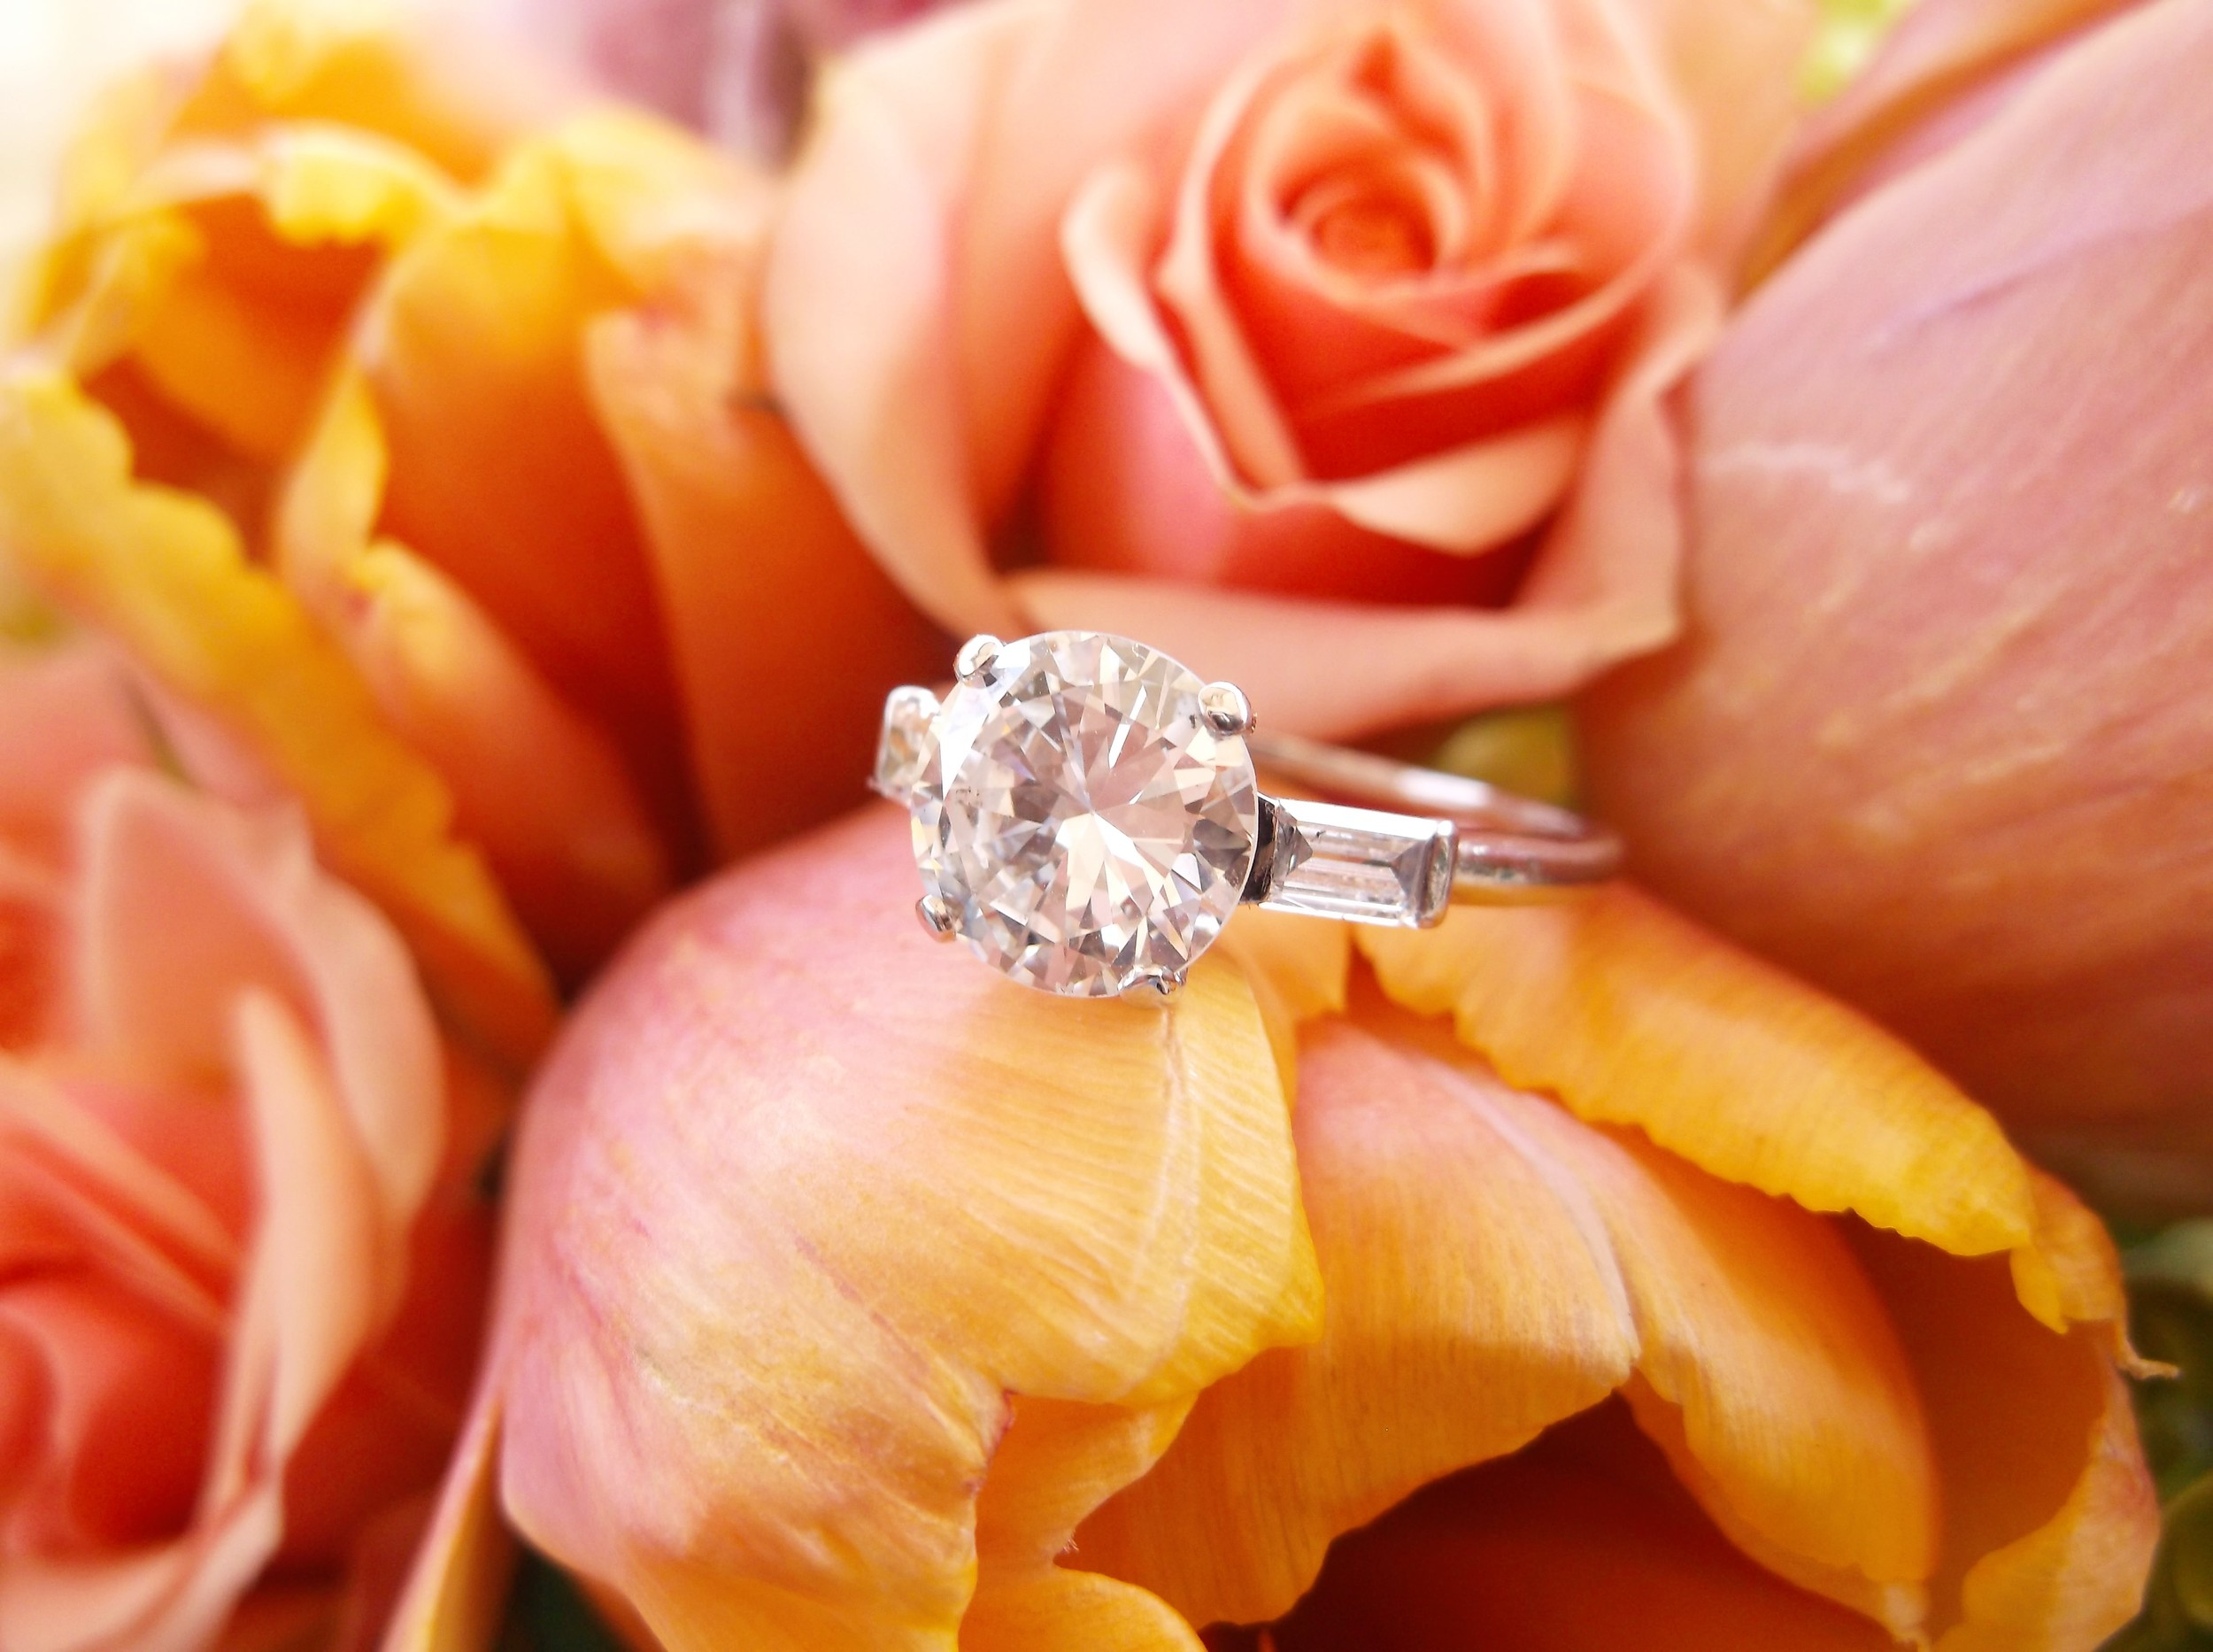 SOLD - Iconic 1.80 carat Old European cut diamond with a baguette cut diamond on each side, set in platinum.